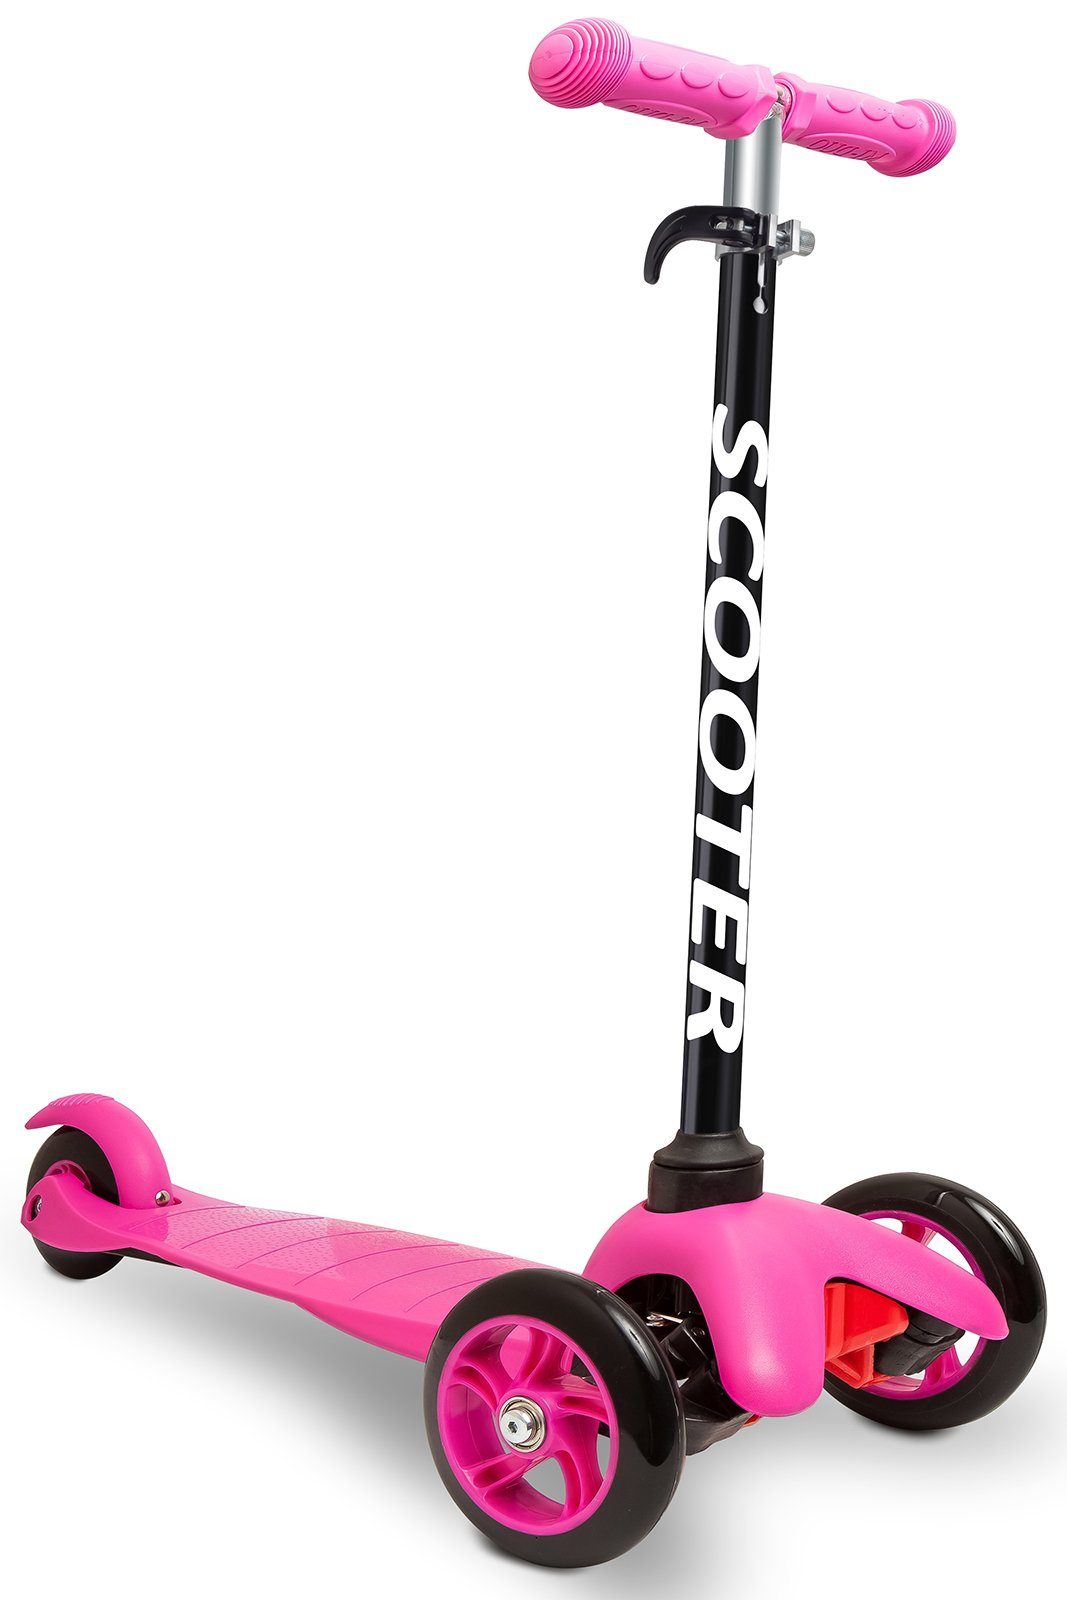 OxGord Scooter for Kids - Deluxe Aluminum 3 Wheel Glider with Kick n Go, Lean 2 Turn, Step 4 Break - Pink by OxGord